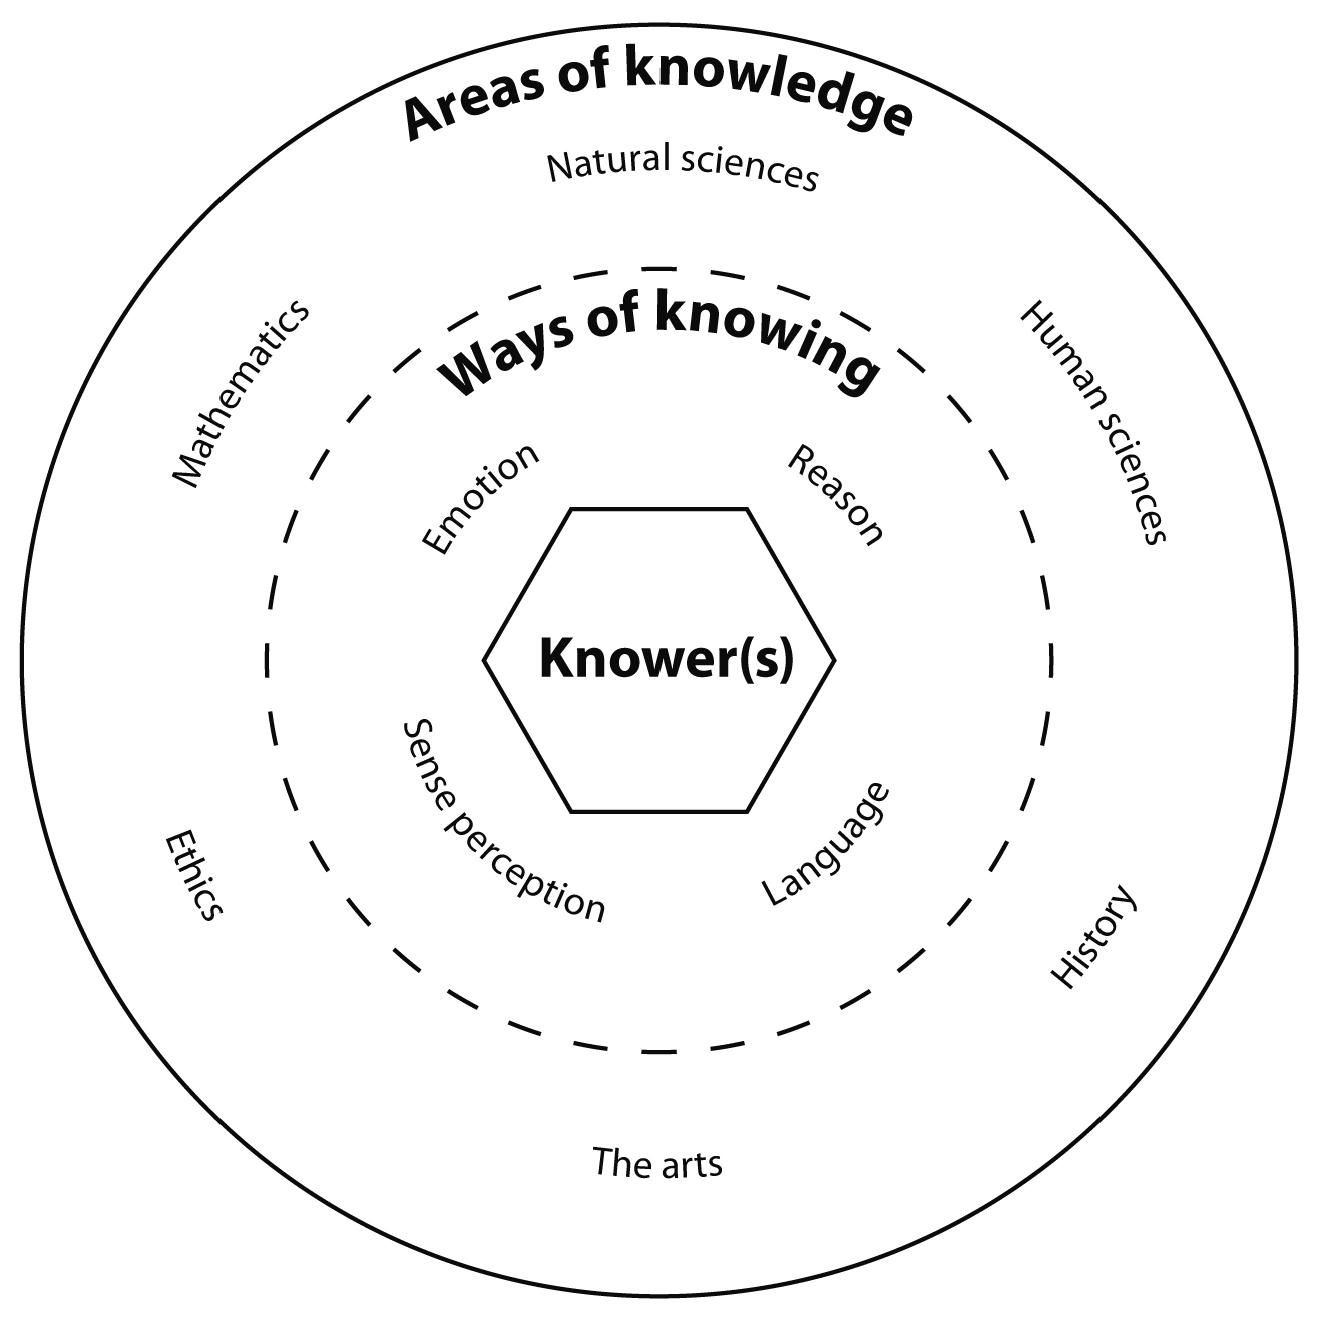 Cover Photo This Circle Diagram Represents The Different